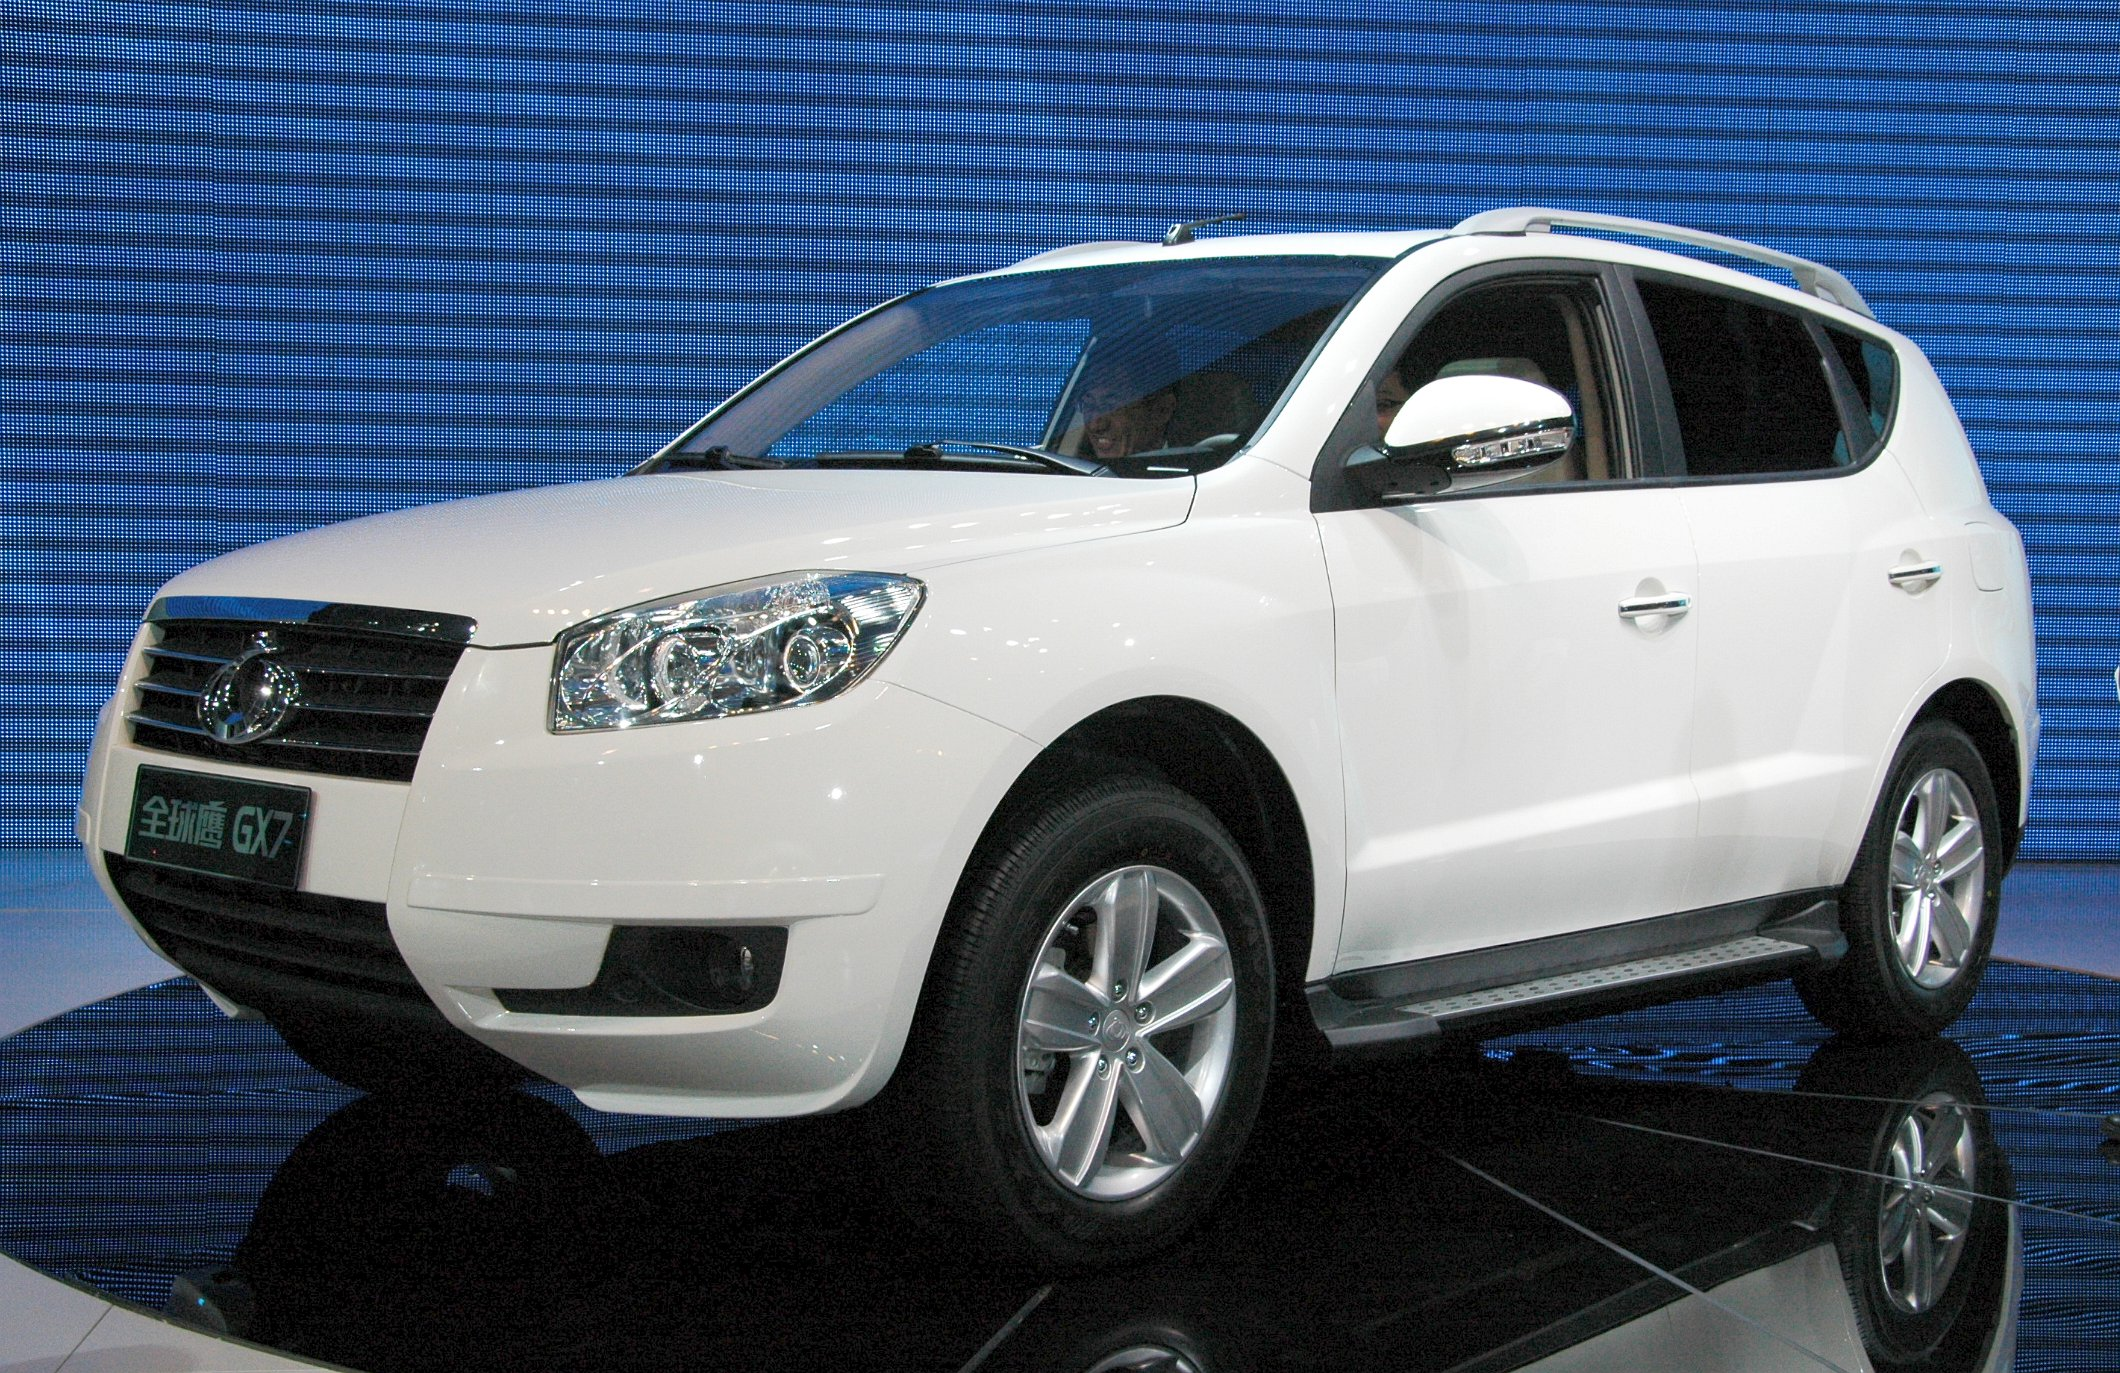 9 Seater Suv >> Geely GX7 SUV - the GLEagle has landed